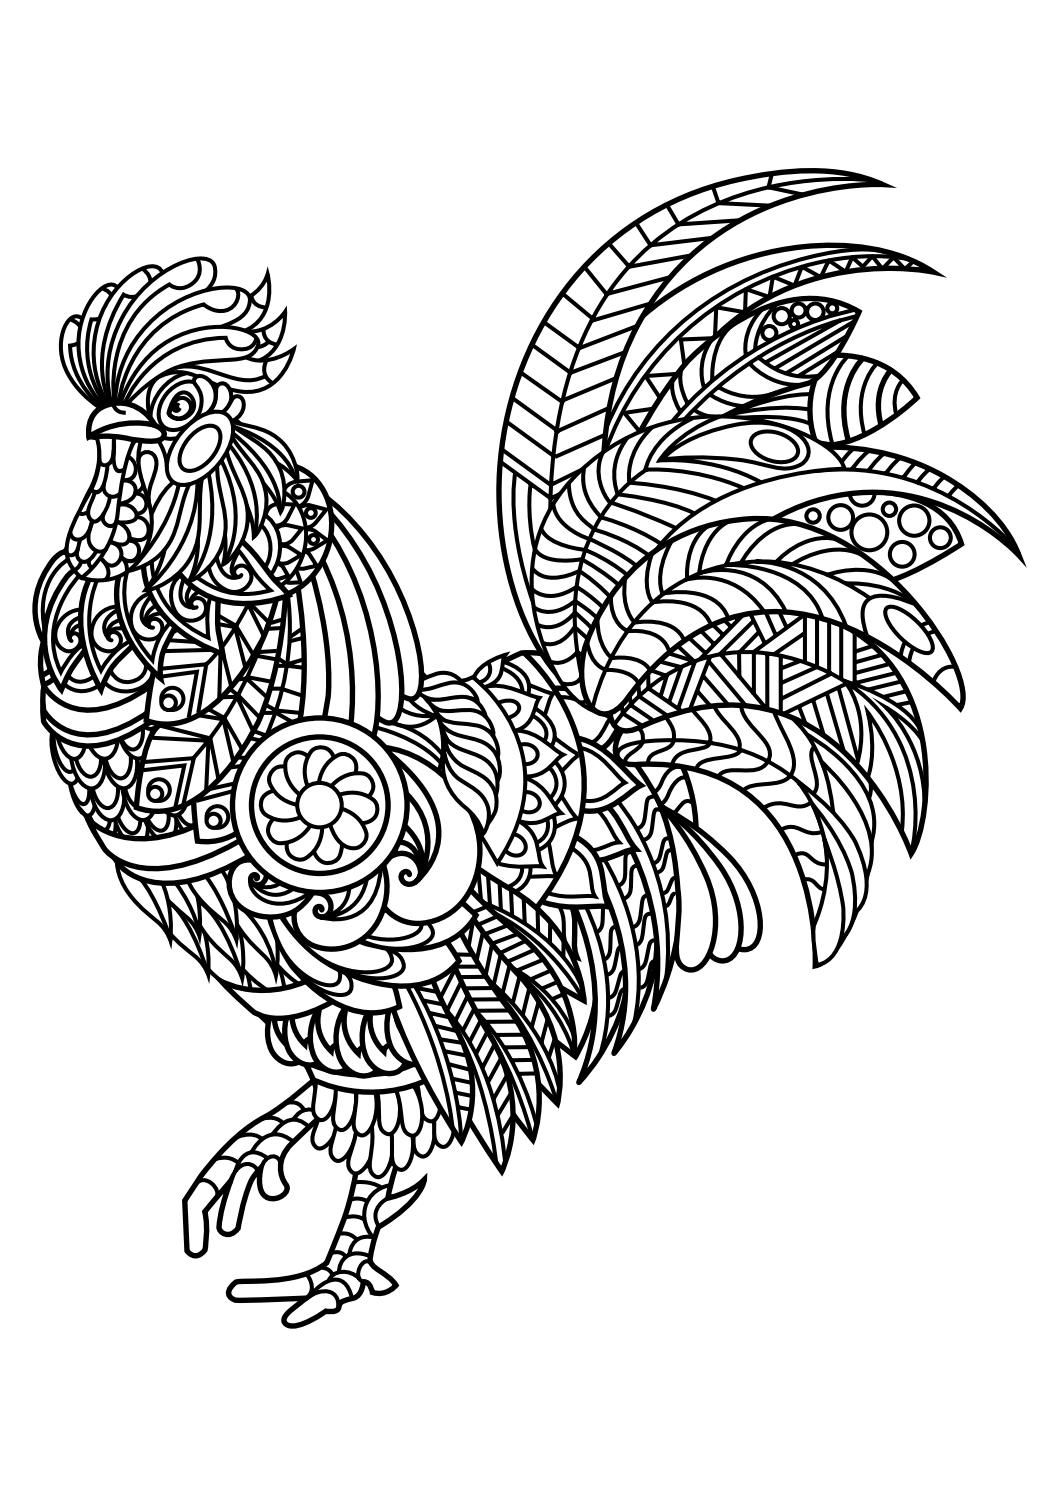 Animal coloring pages pdf | Things I\'d love to Draw | Pinterest